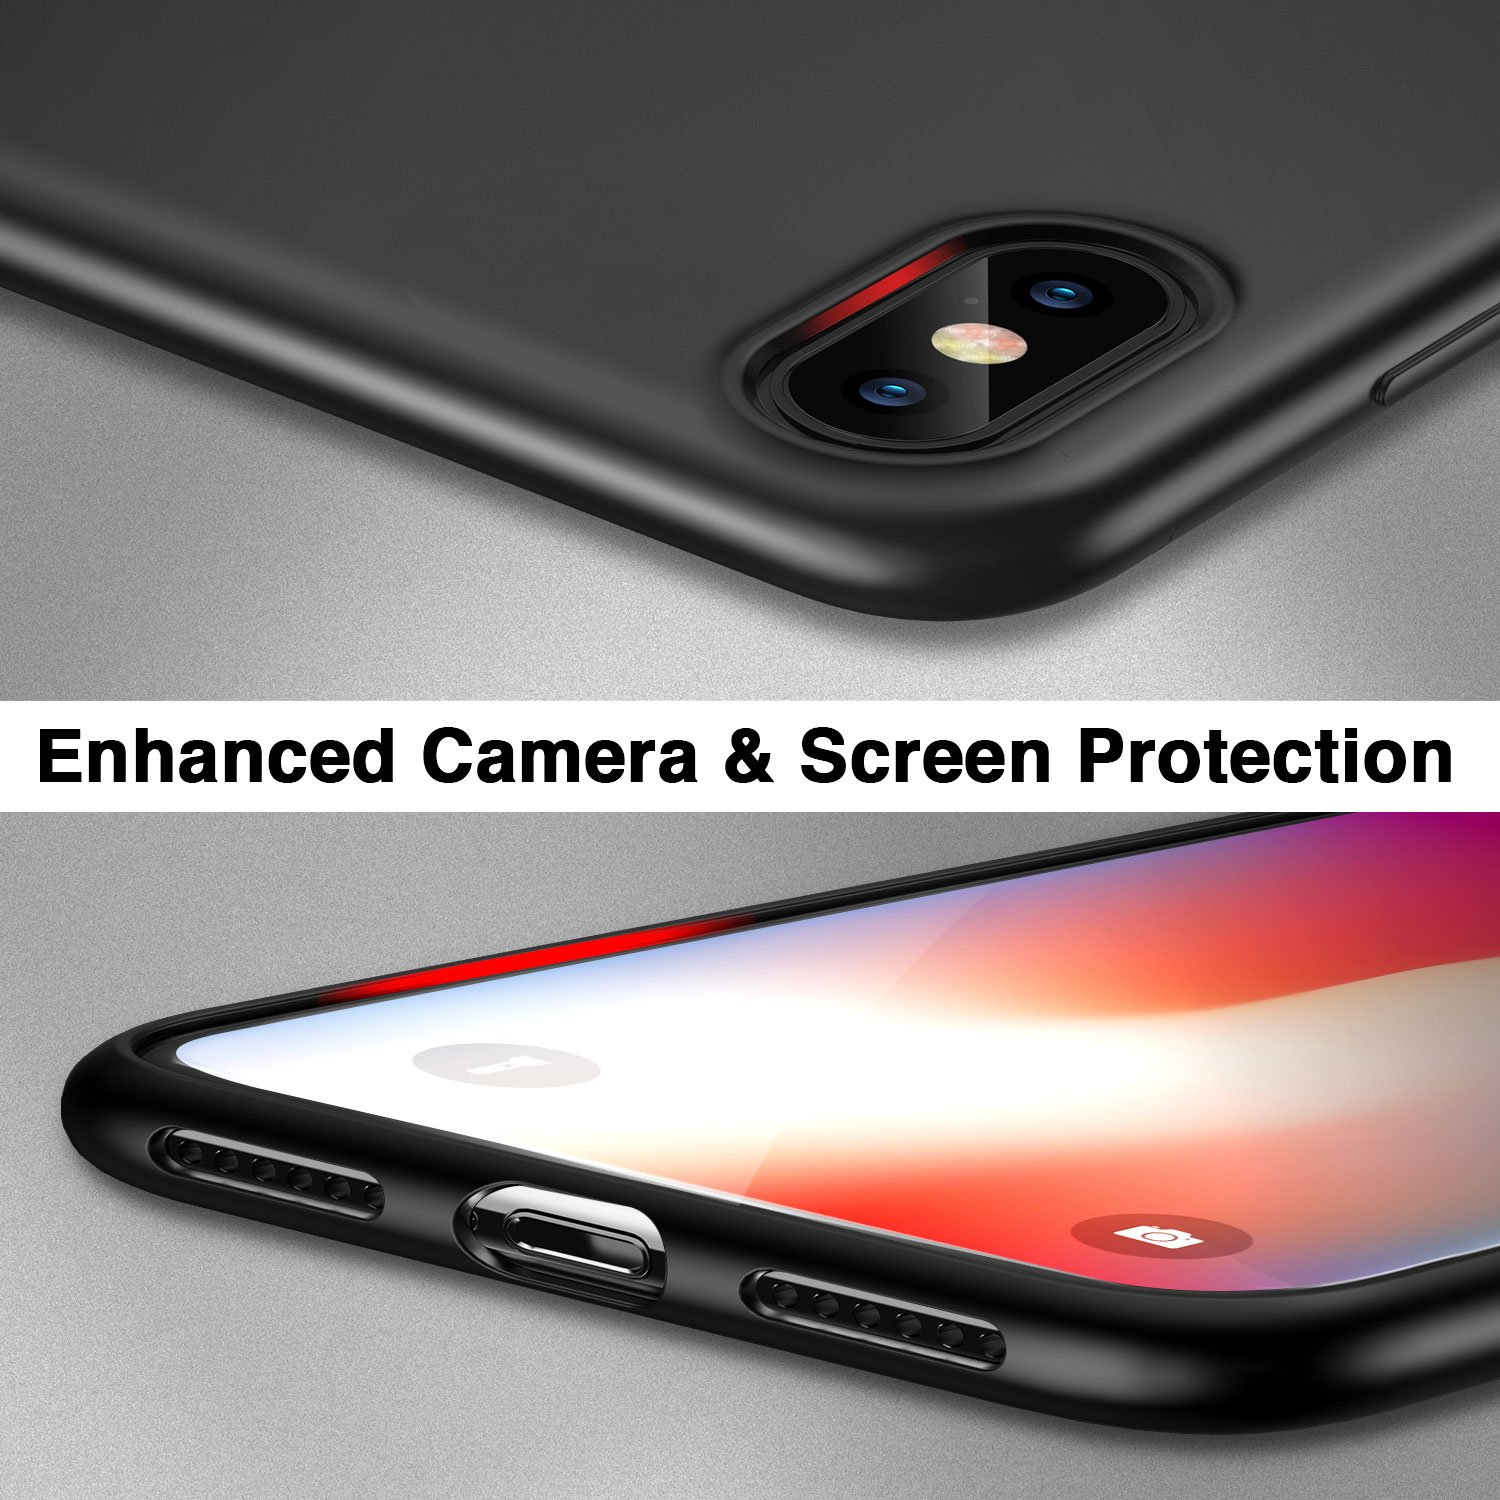 for Apple iPhone Xs Slim Fit // iPhone X iPhone X Case Clear Soft TPU Protective Cover 2017 Anti-Scratch 0.98mm Thin 2018 iPhone 10 Case, ESR iPhone Xs Case - Clear